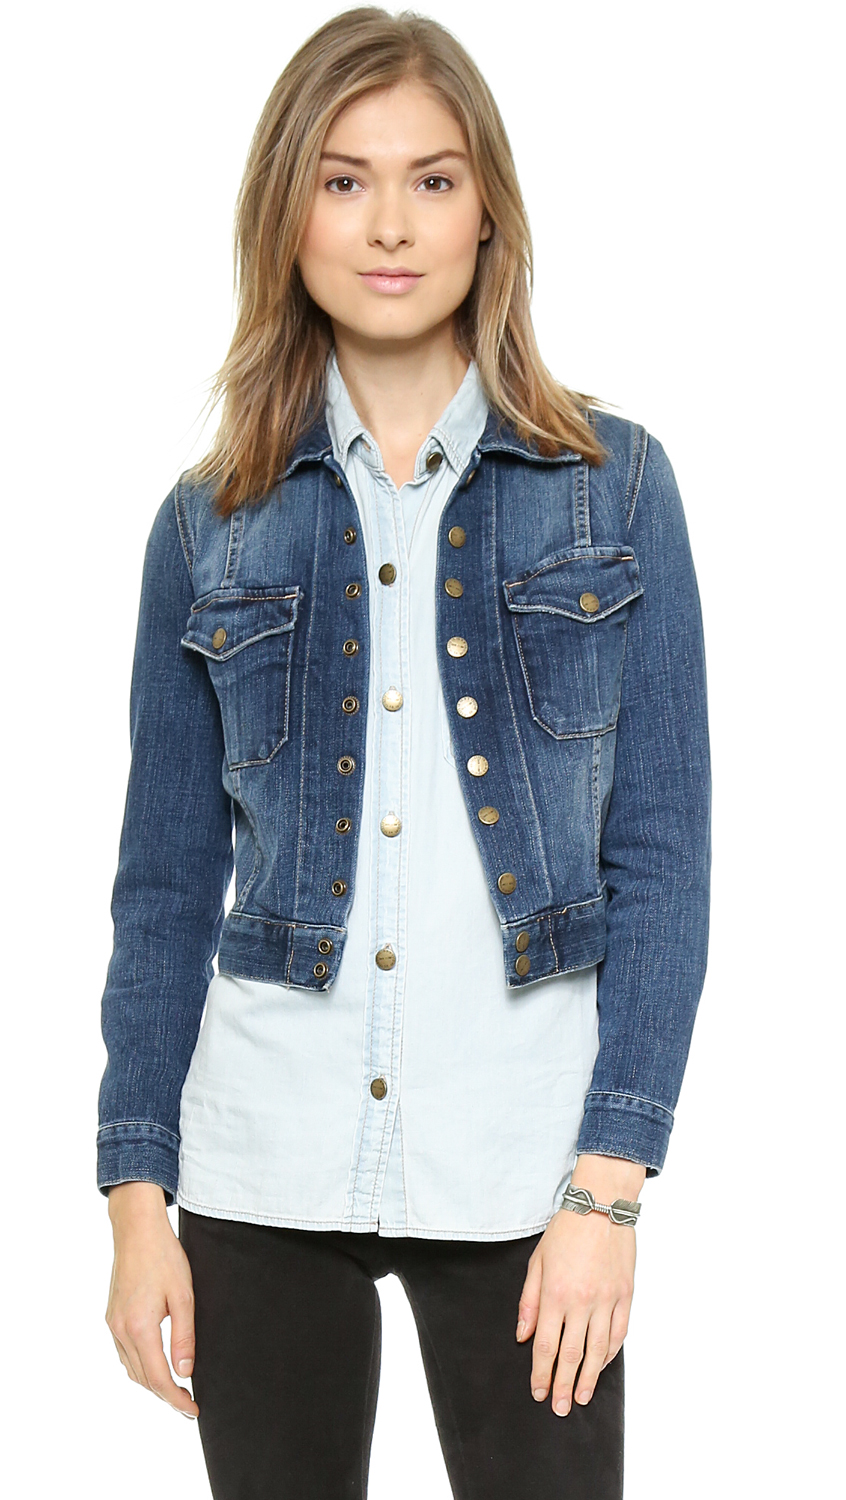 2016 Kot Ceket Modelleri ve Kombinleri 2016-Denim-Jackets-and-Coats-For-Women-22